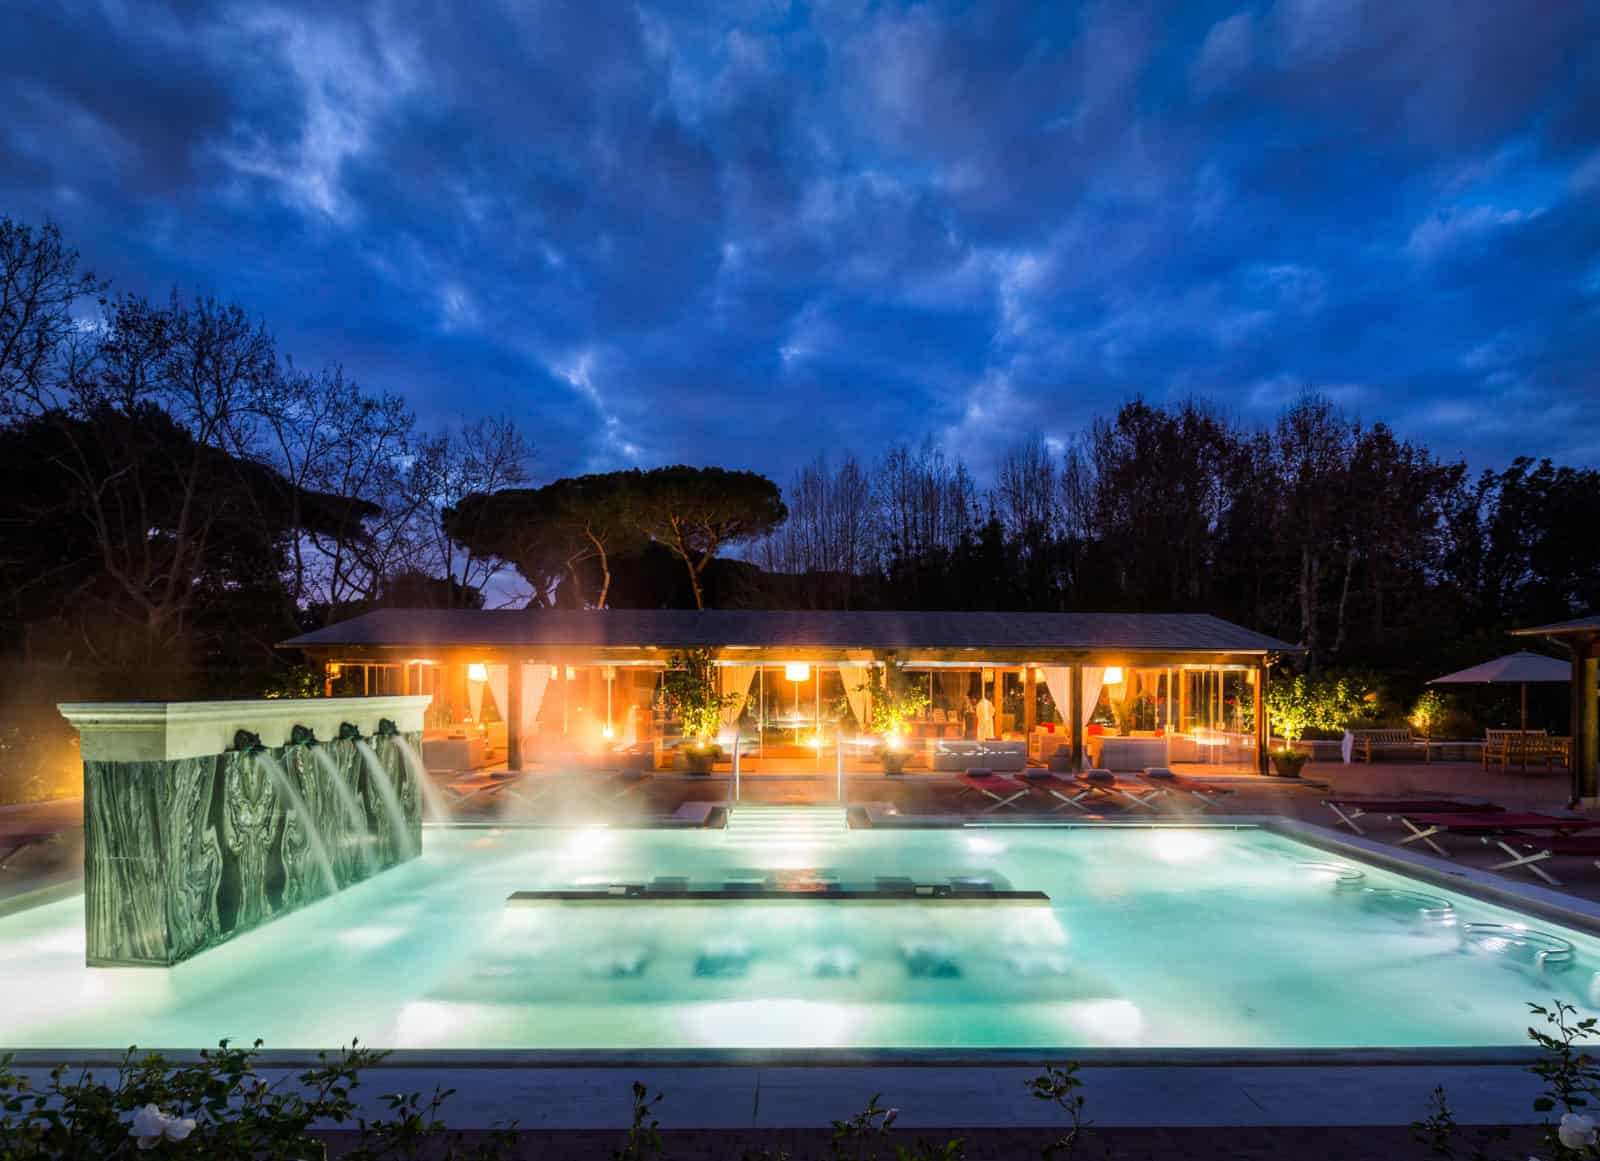 Valentine's Day in Rome: An overnight stay at QC Termeroma is the perfect SPAcial gift